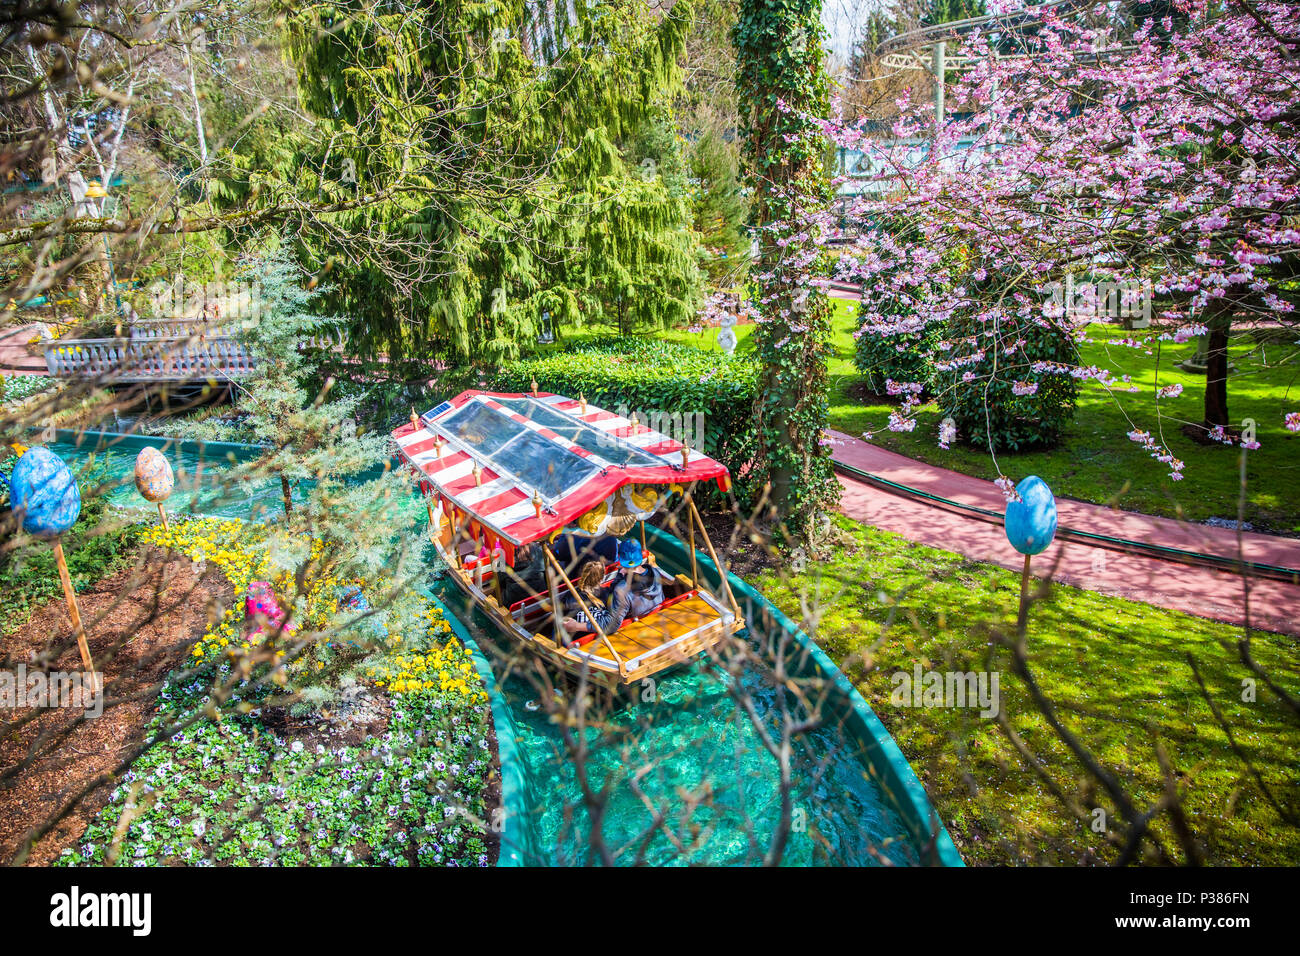 RUST, GERMANY - March 31, 2018 - Guests riding boats in Europa-Park. Europa-Park is a second largest park resort in Europe. - Stock Image